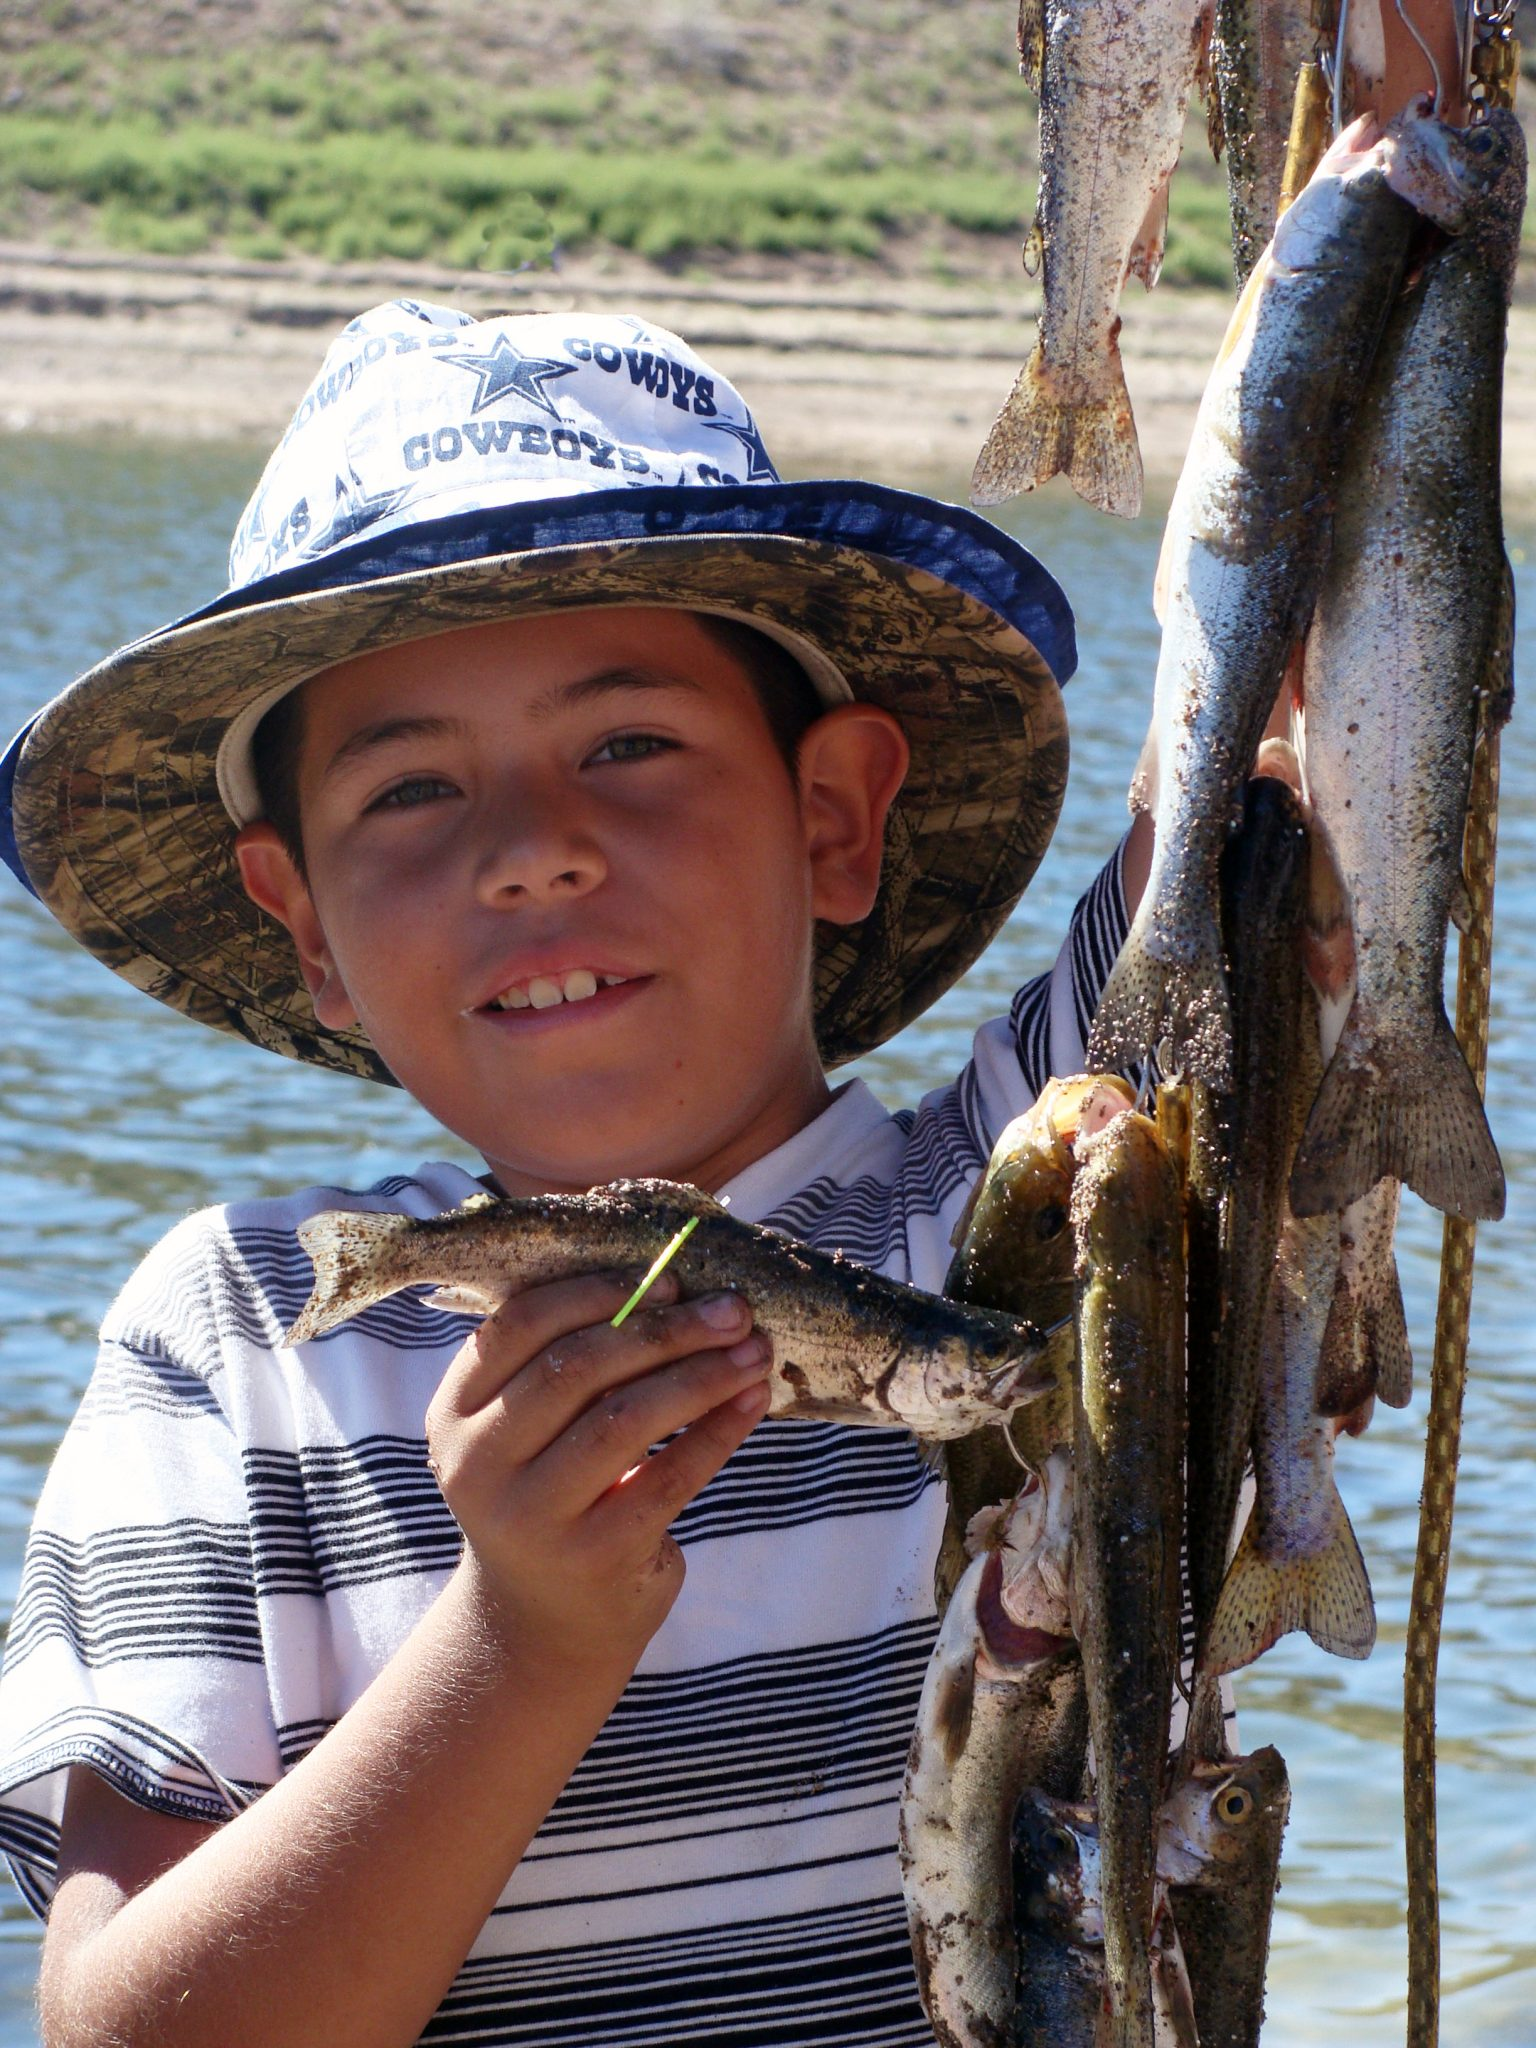 Prized fish reeled in at derby